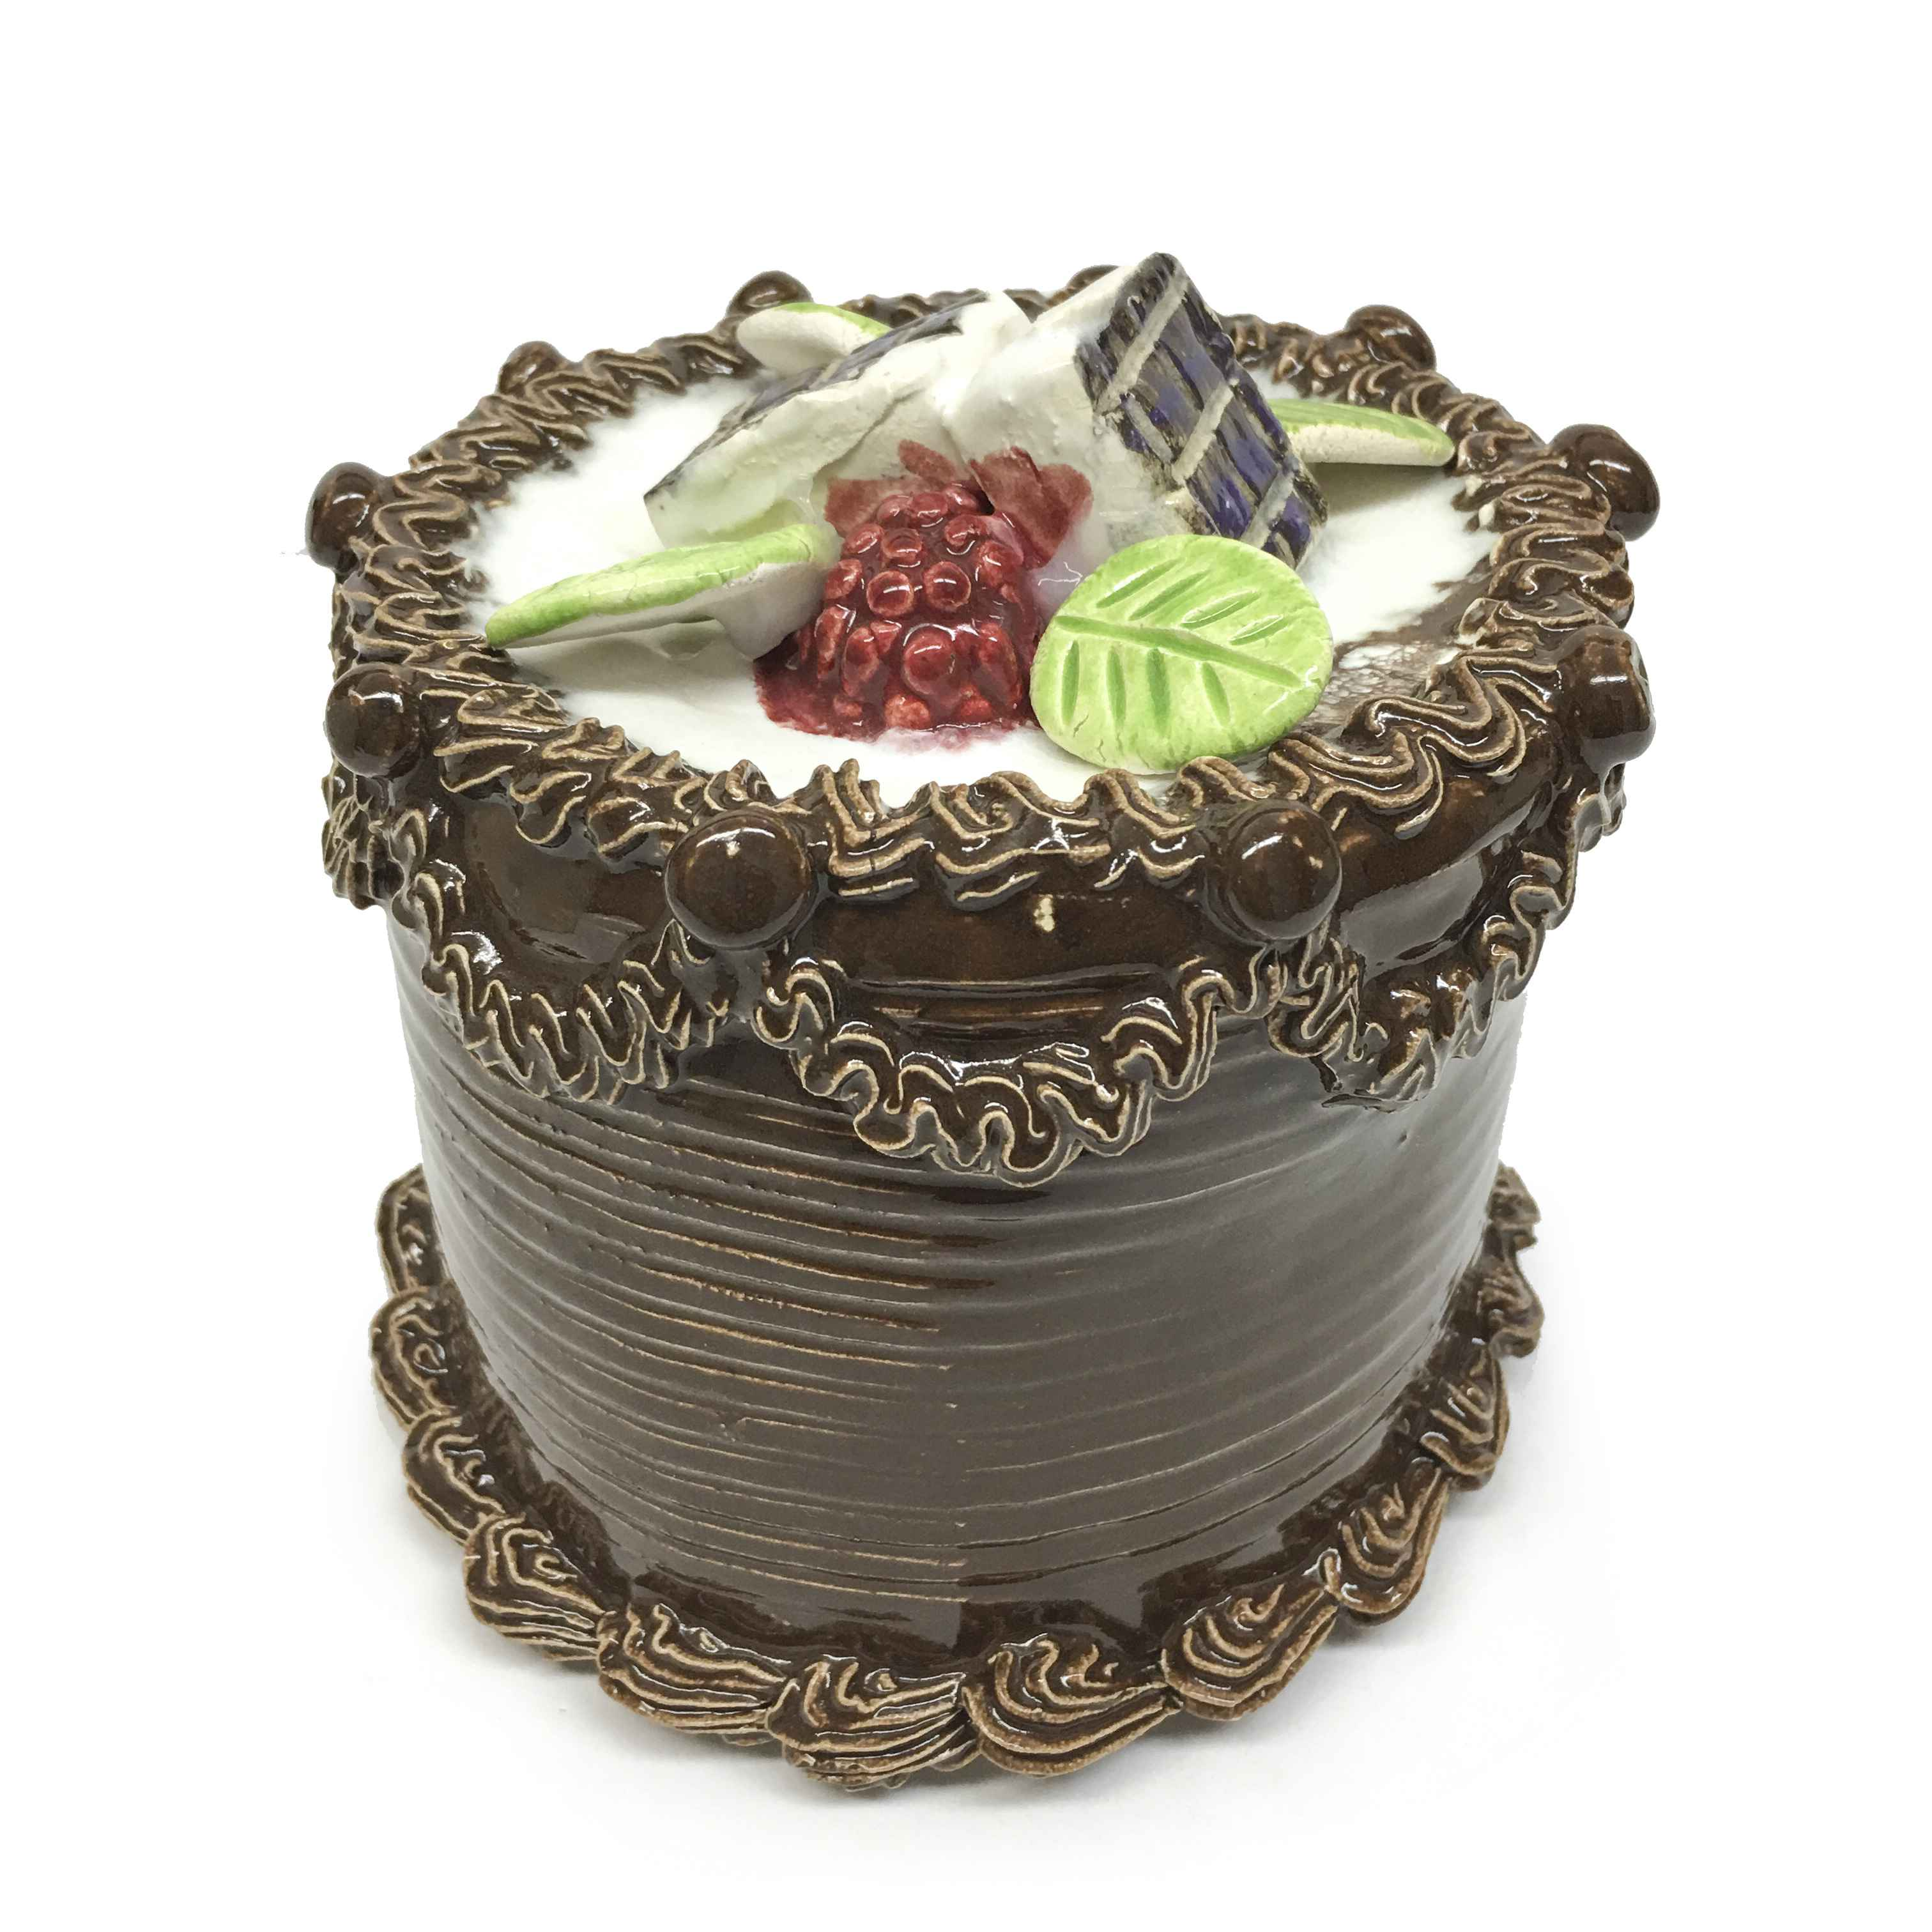 Chic Cake With Candy ... represented  by  Jeff Nebeker